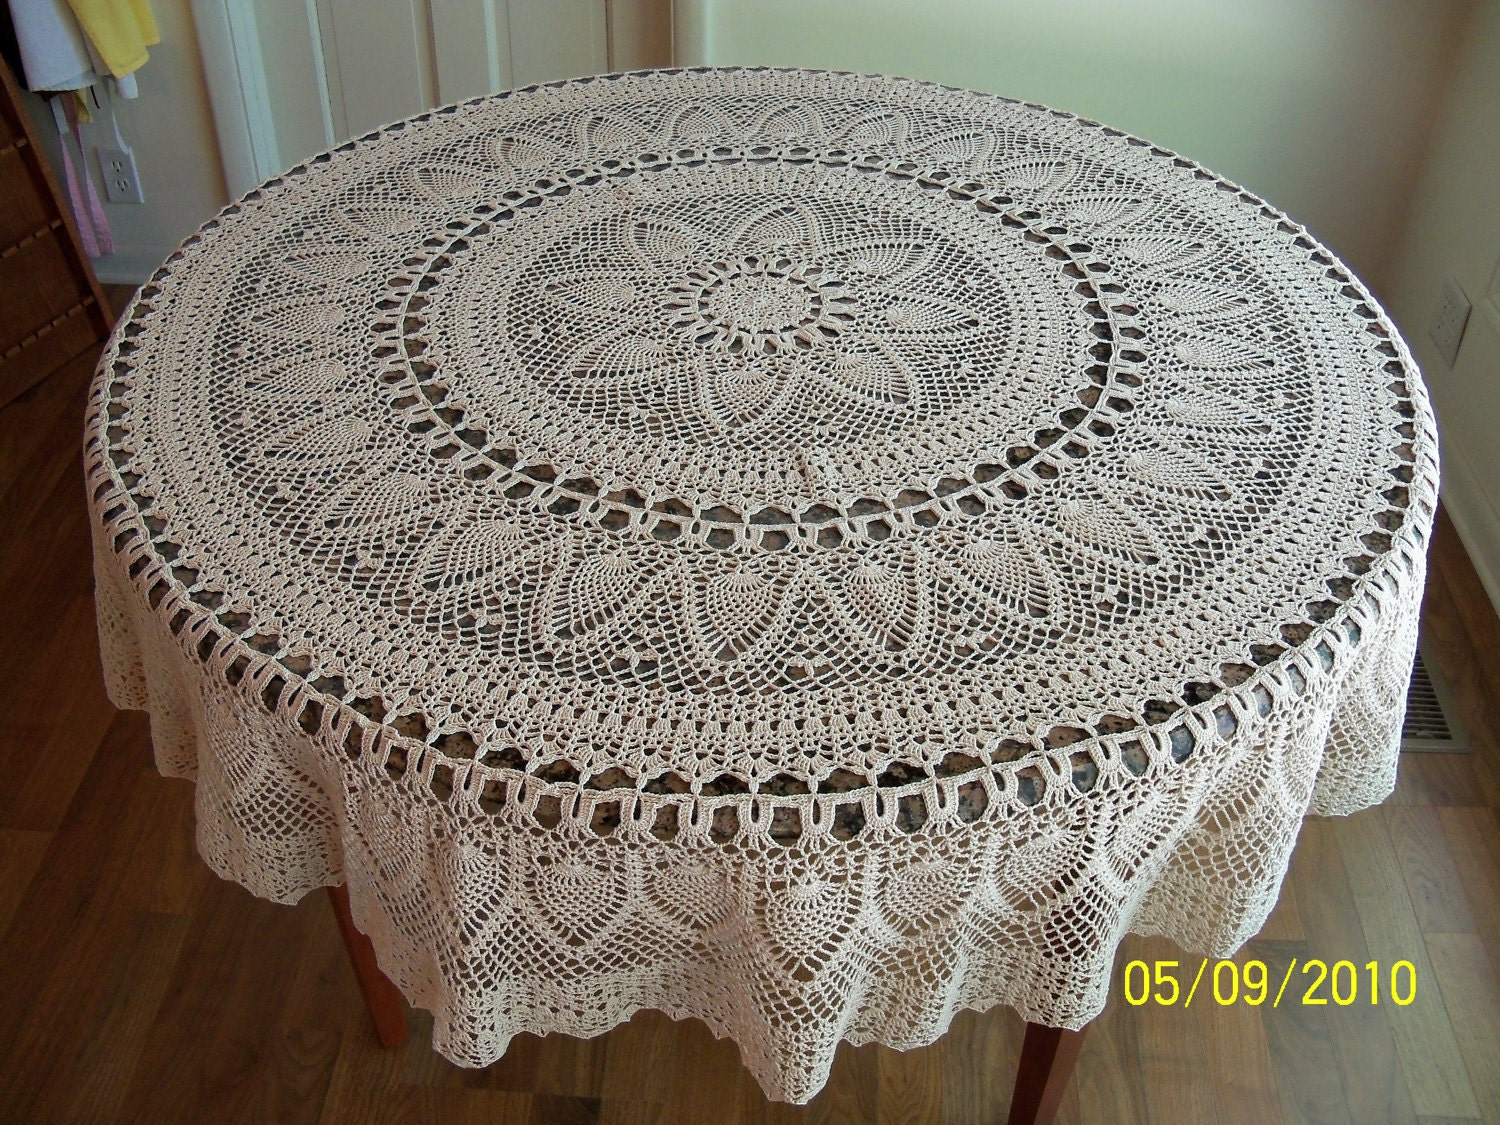 Crochet Tablecloth Pattern : Handmade Crocheted Pineapple Tablecloth 70 inch Round by jenearly1